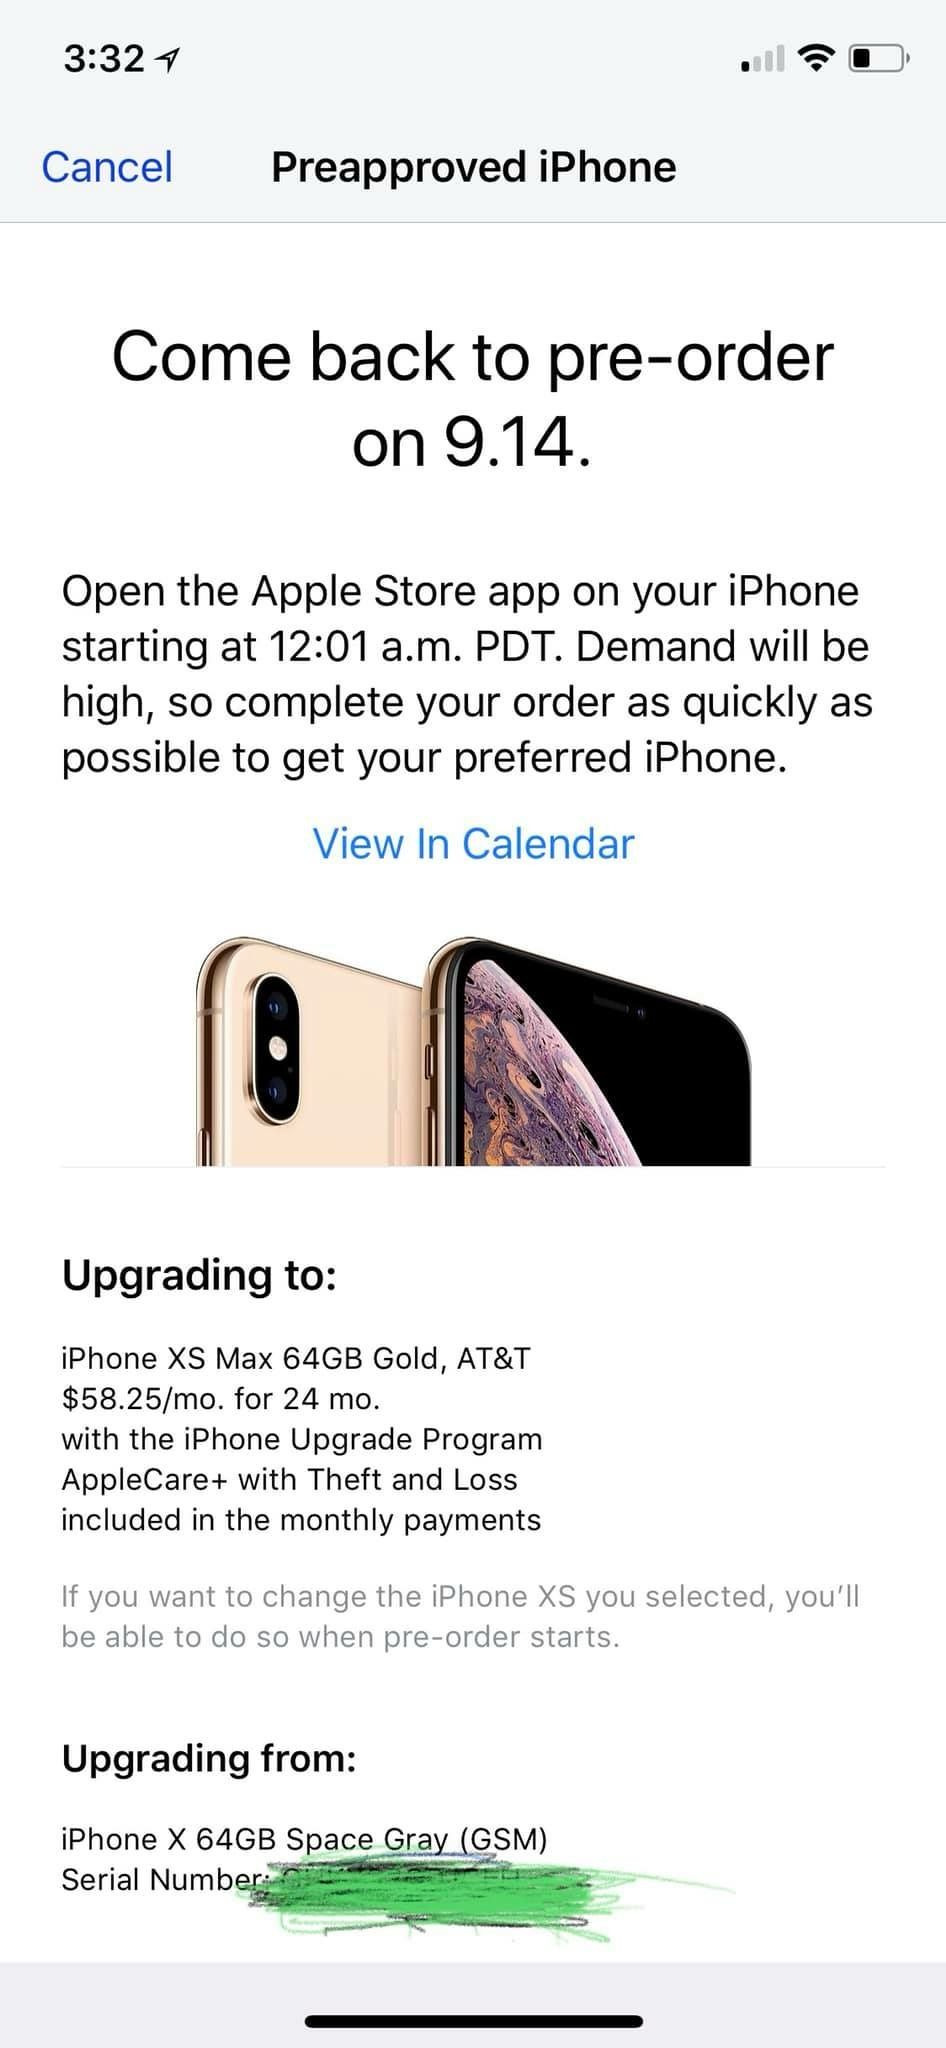 Citizen One Iphone Loan